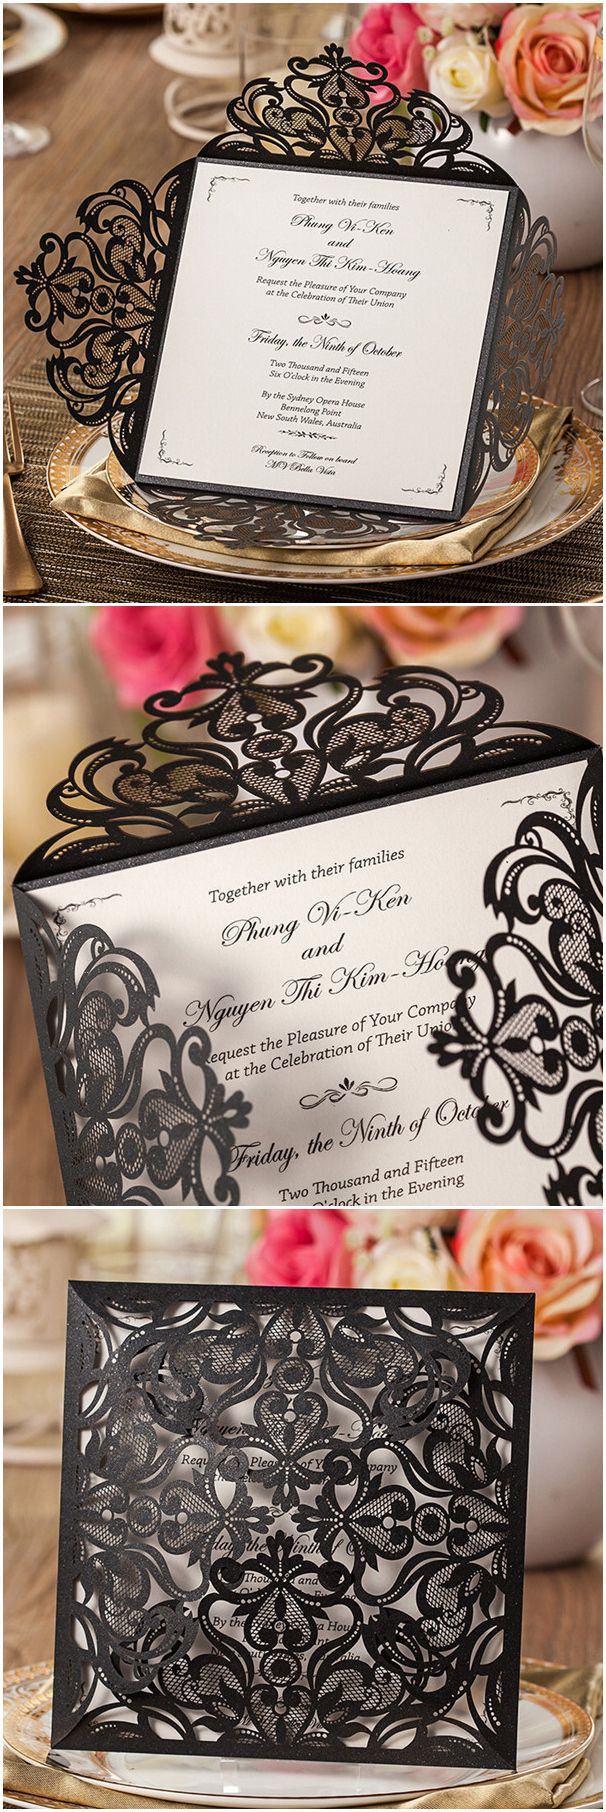 affordable shiny black laser cut wedding invitations